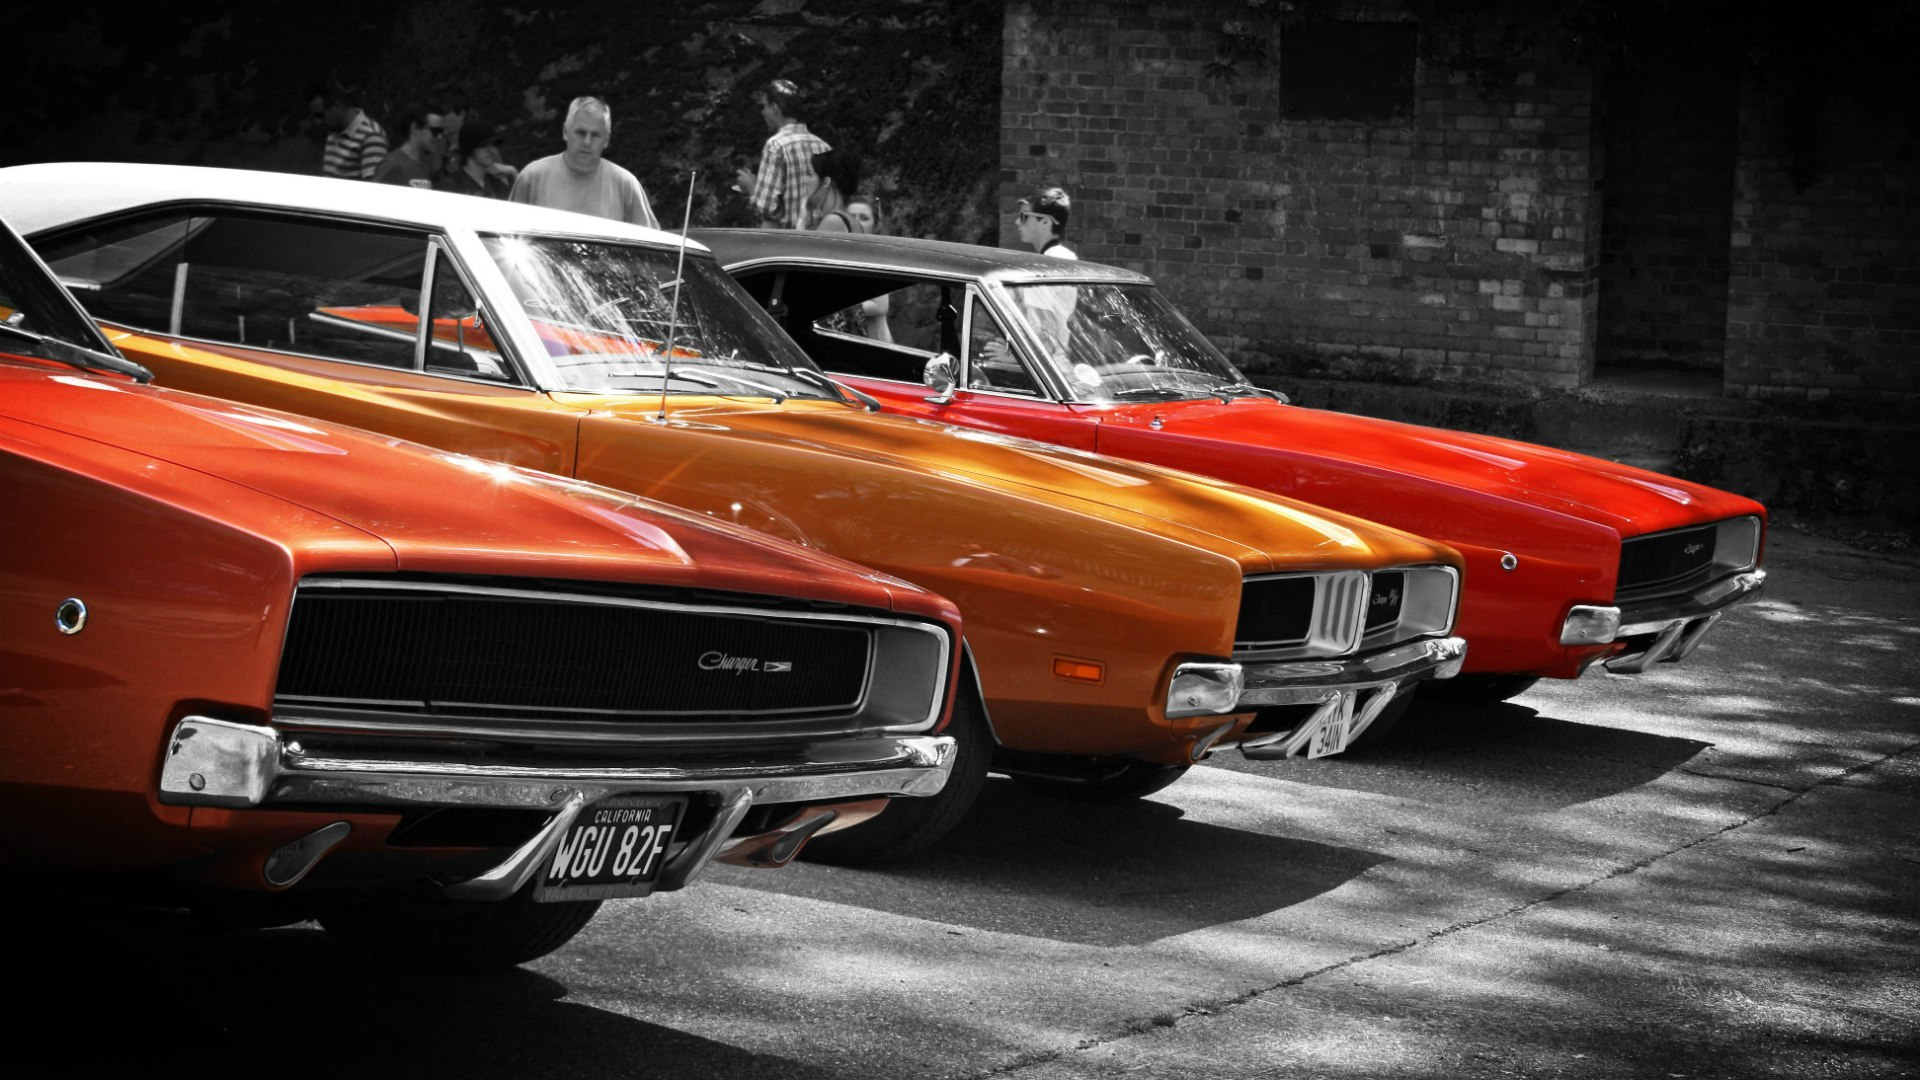 1969 charger wallpaper - photo #17